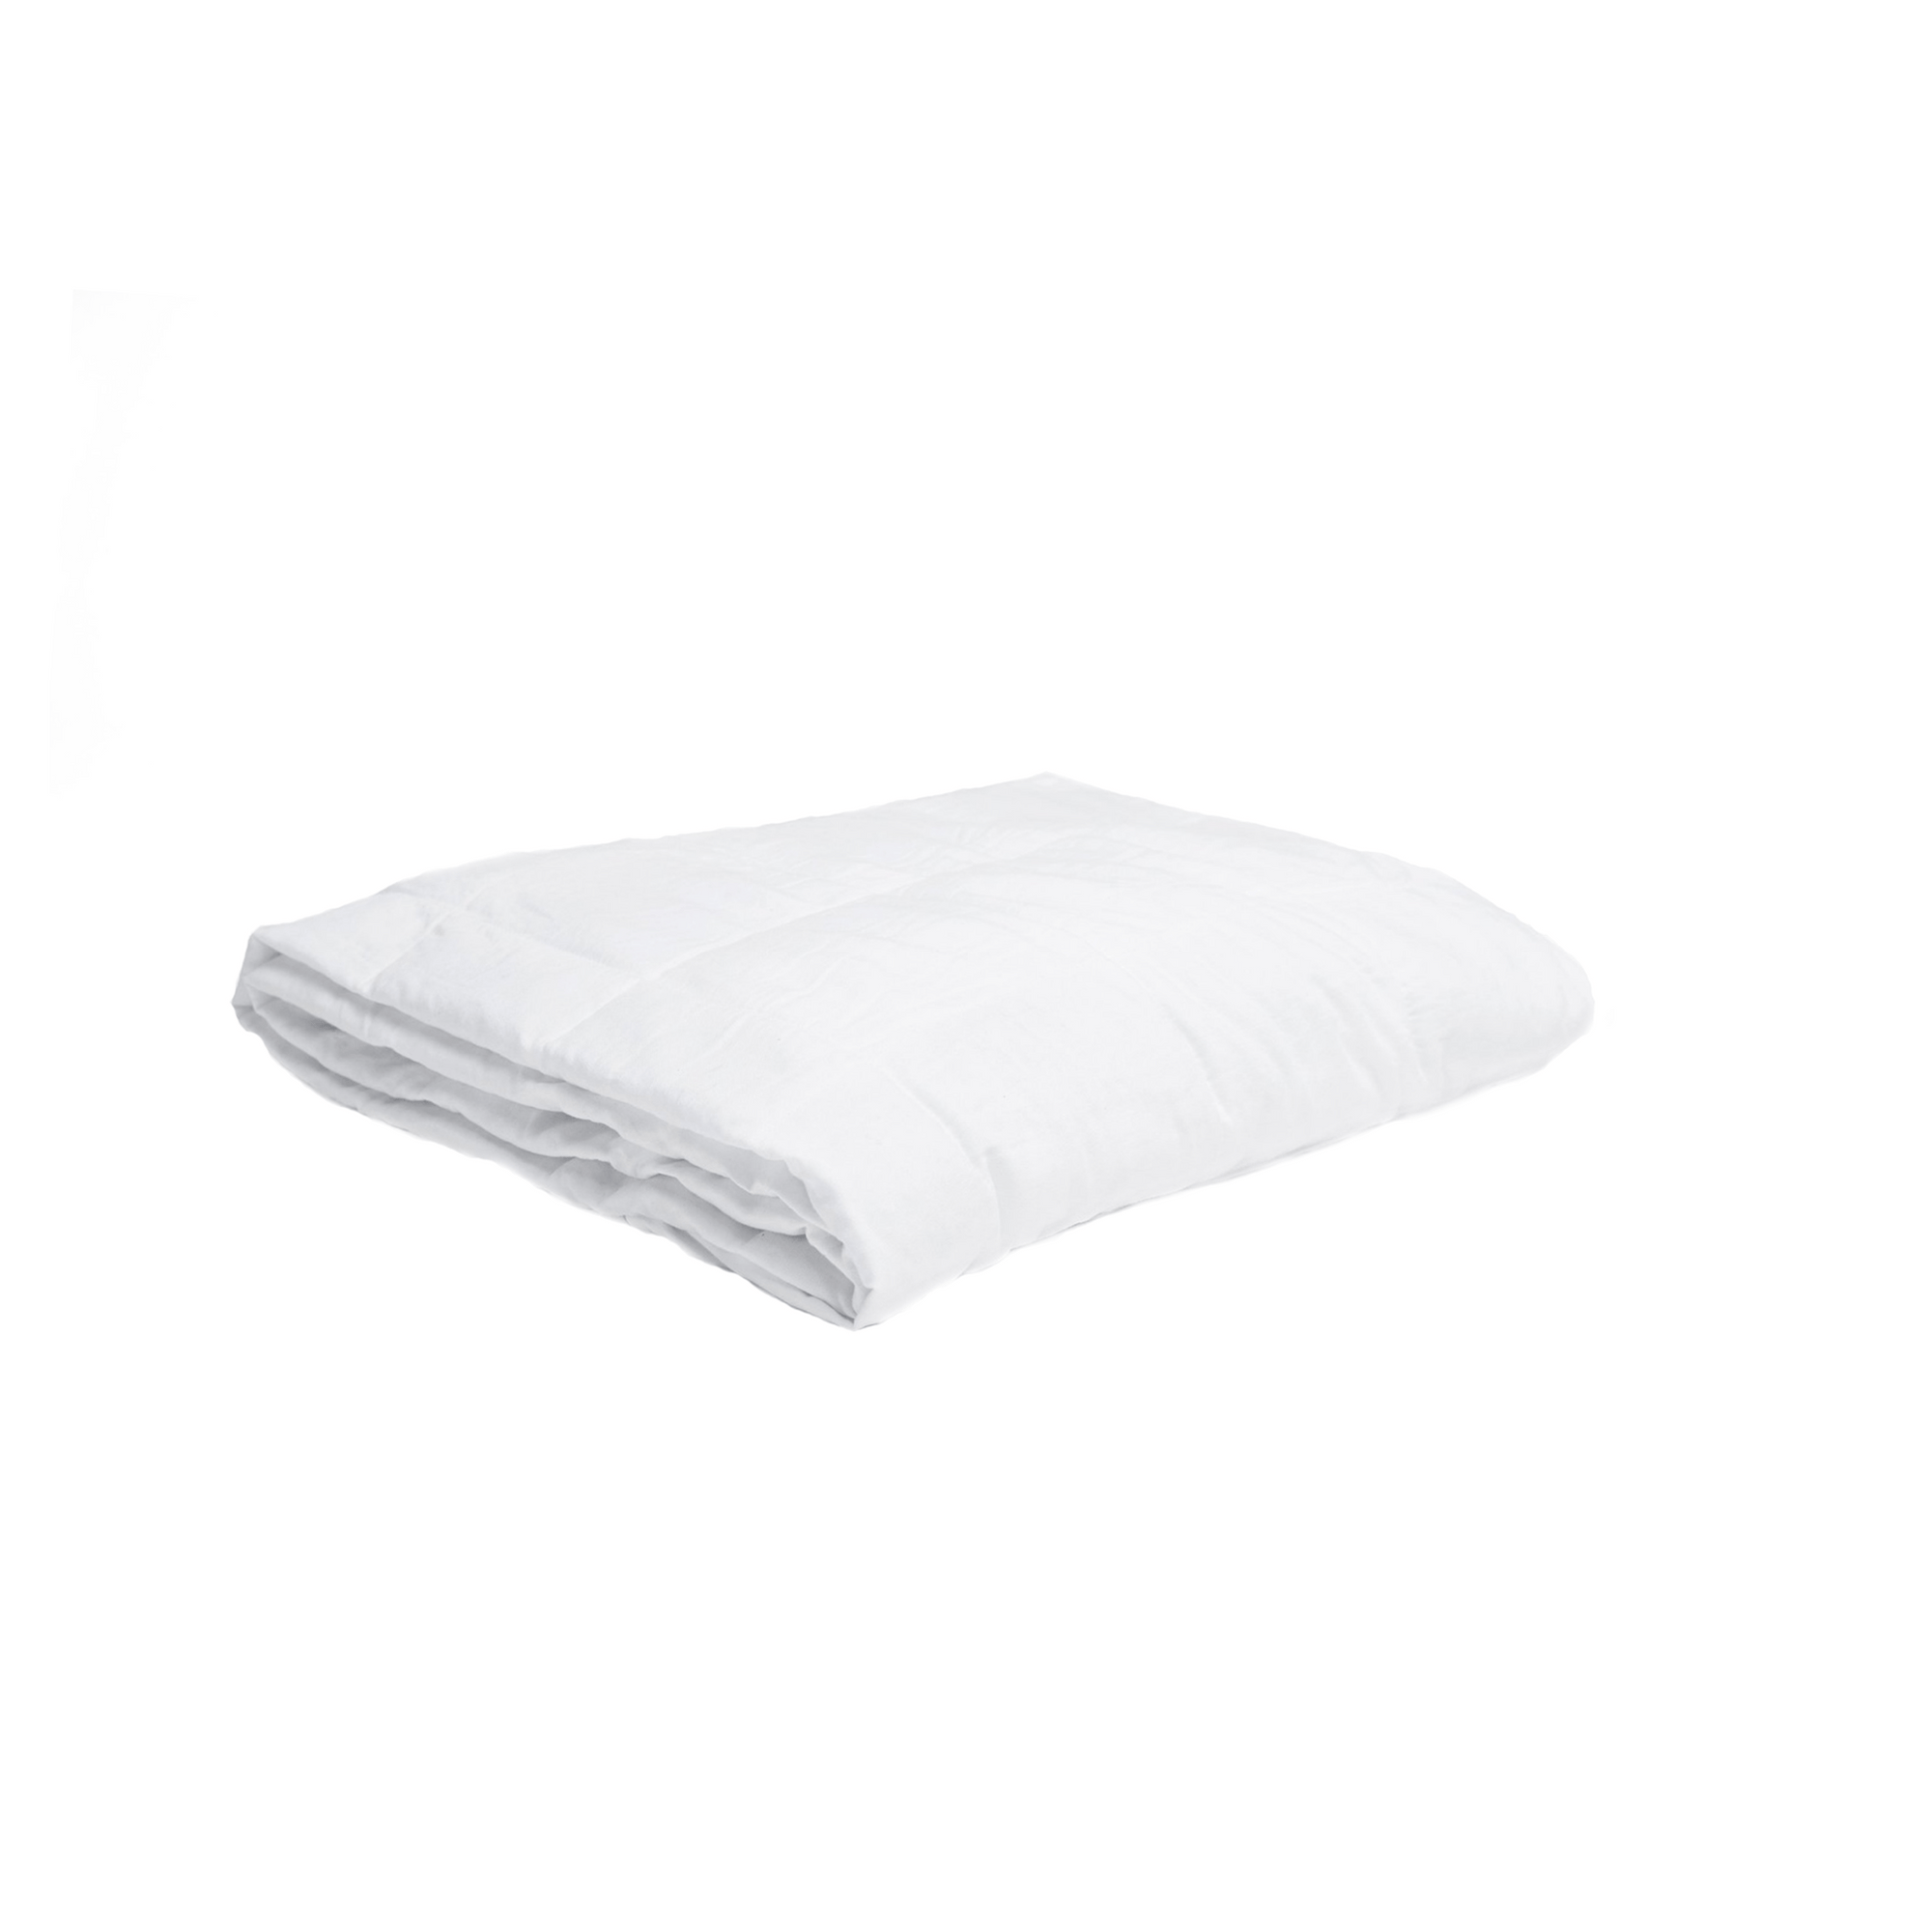 Coolmax Weighted Blanket White For Adults Designed To Improve Sleep